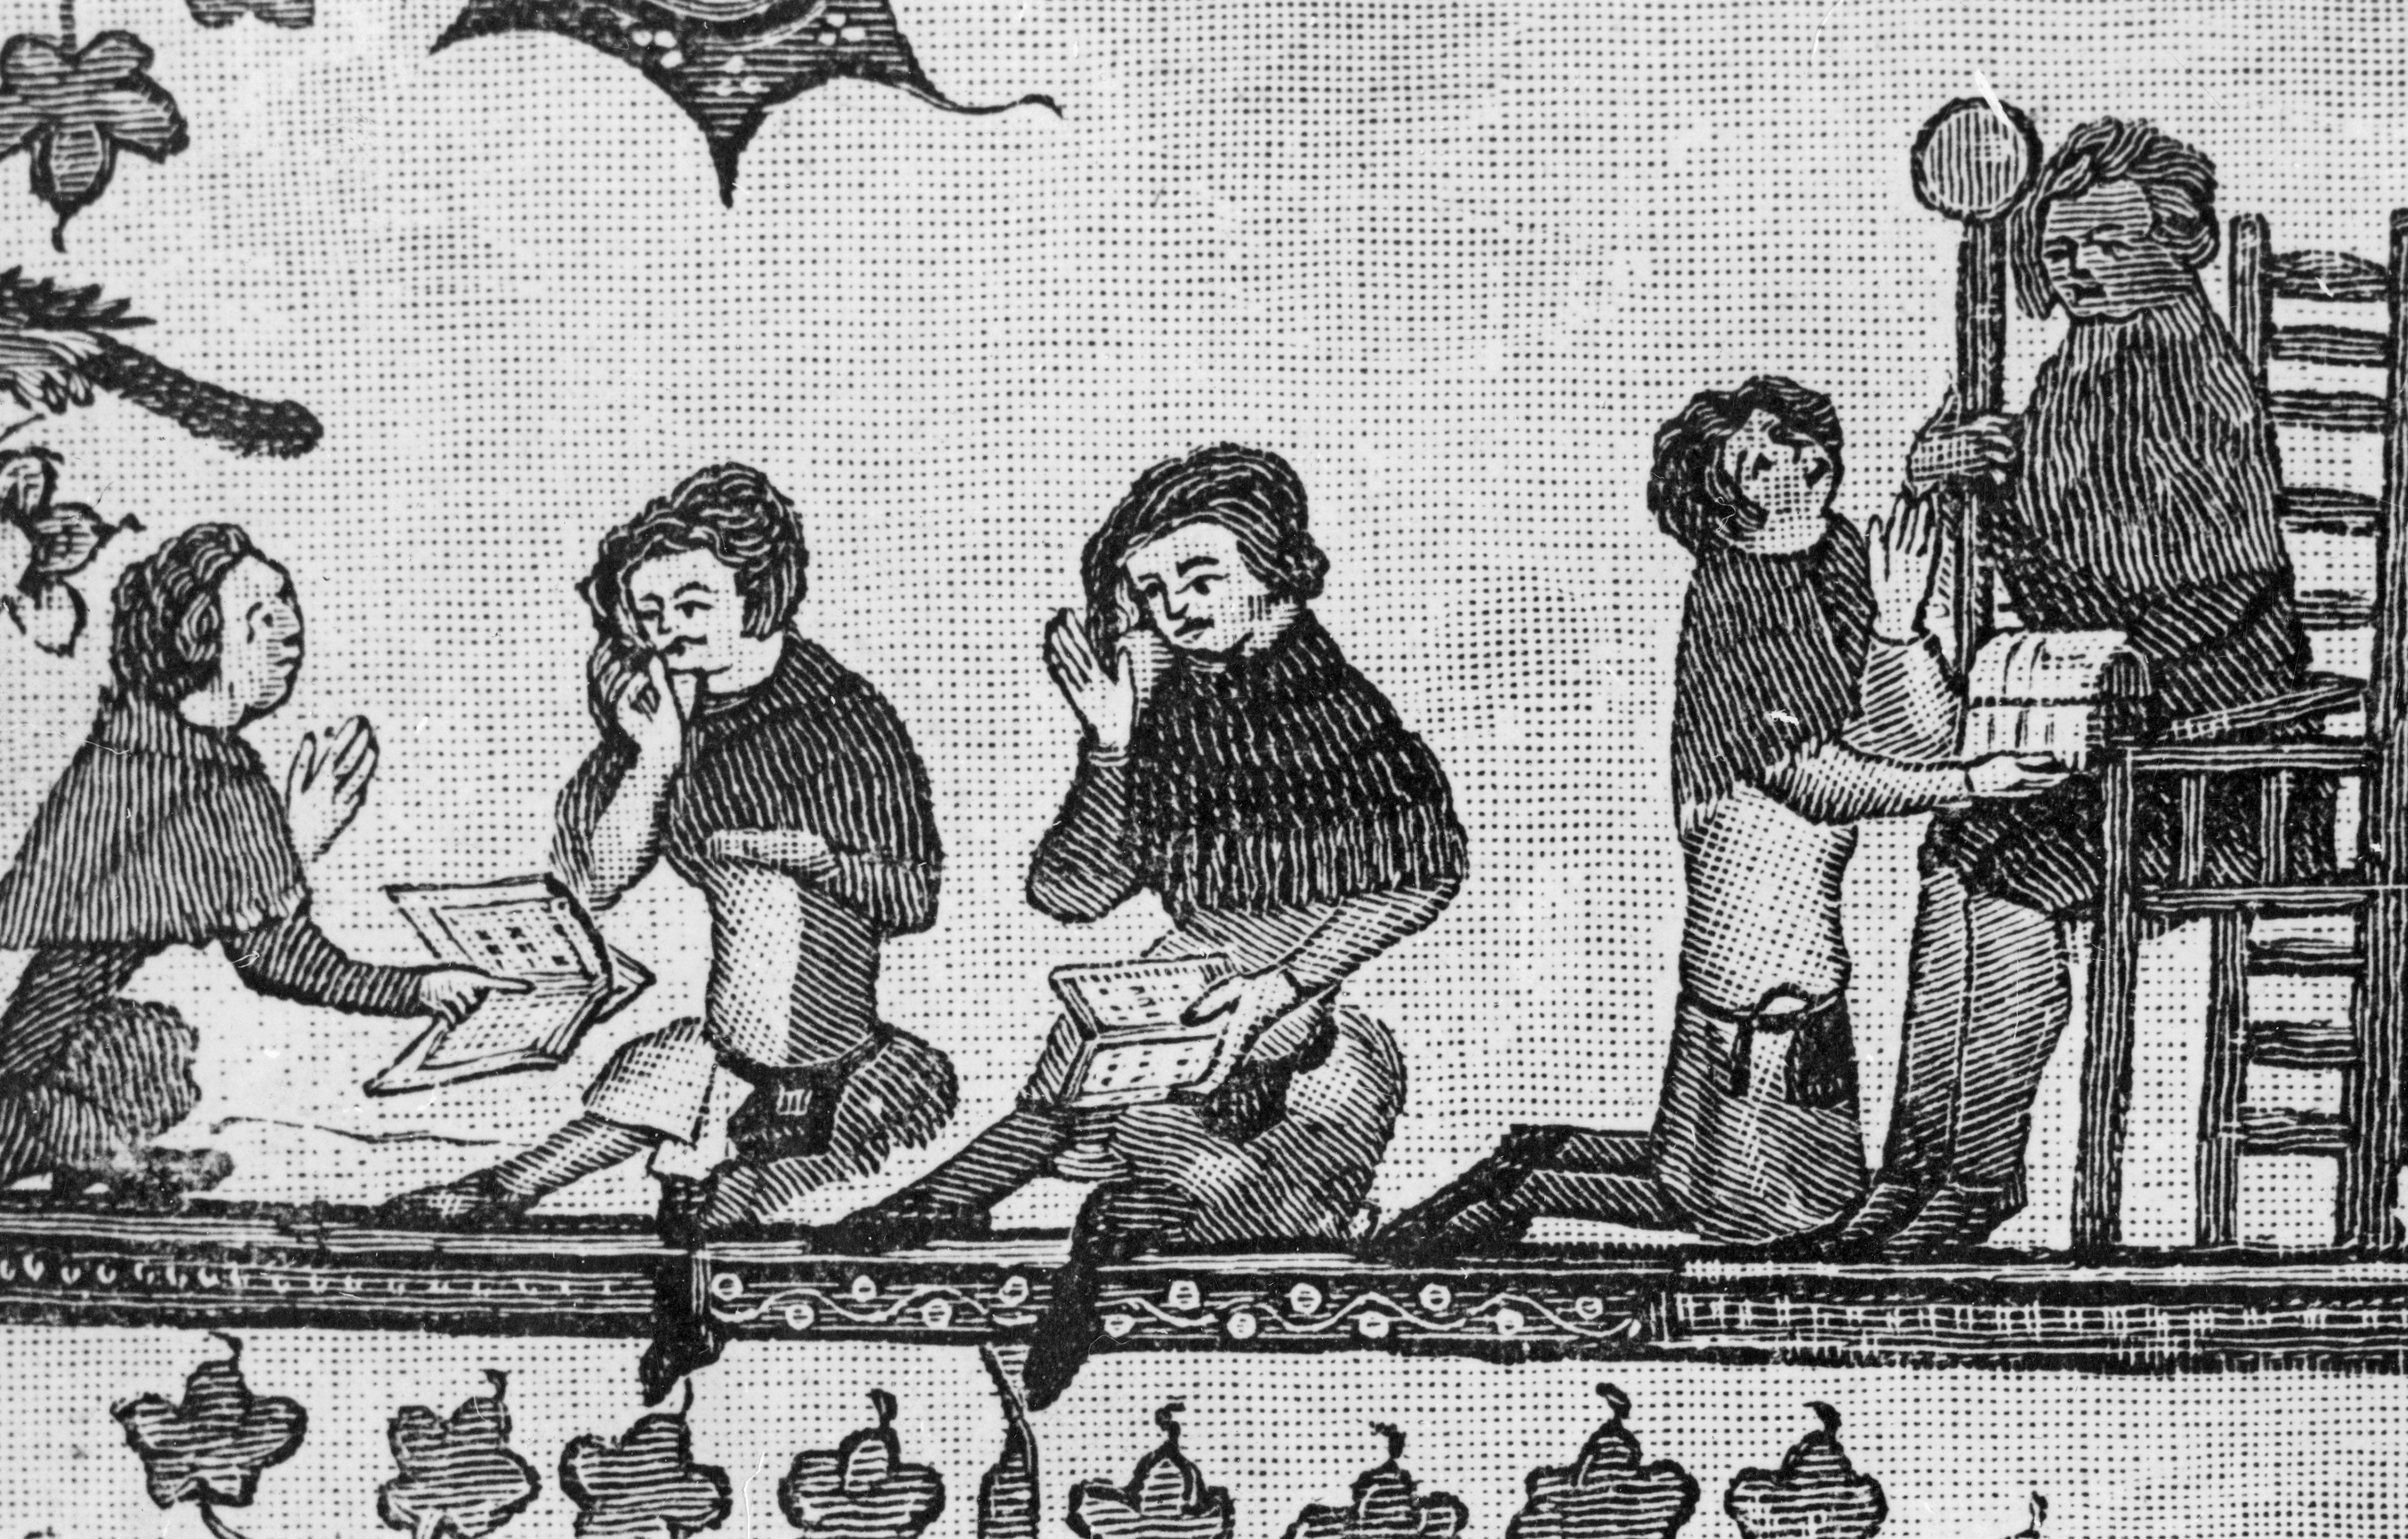 An image showing schoolchildren at their books, UK, AD 1338-1344.